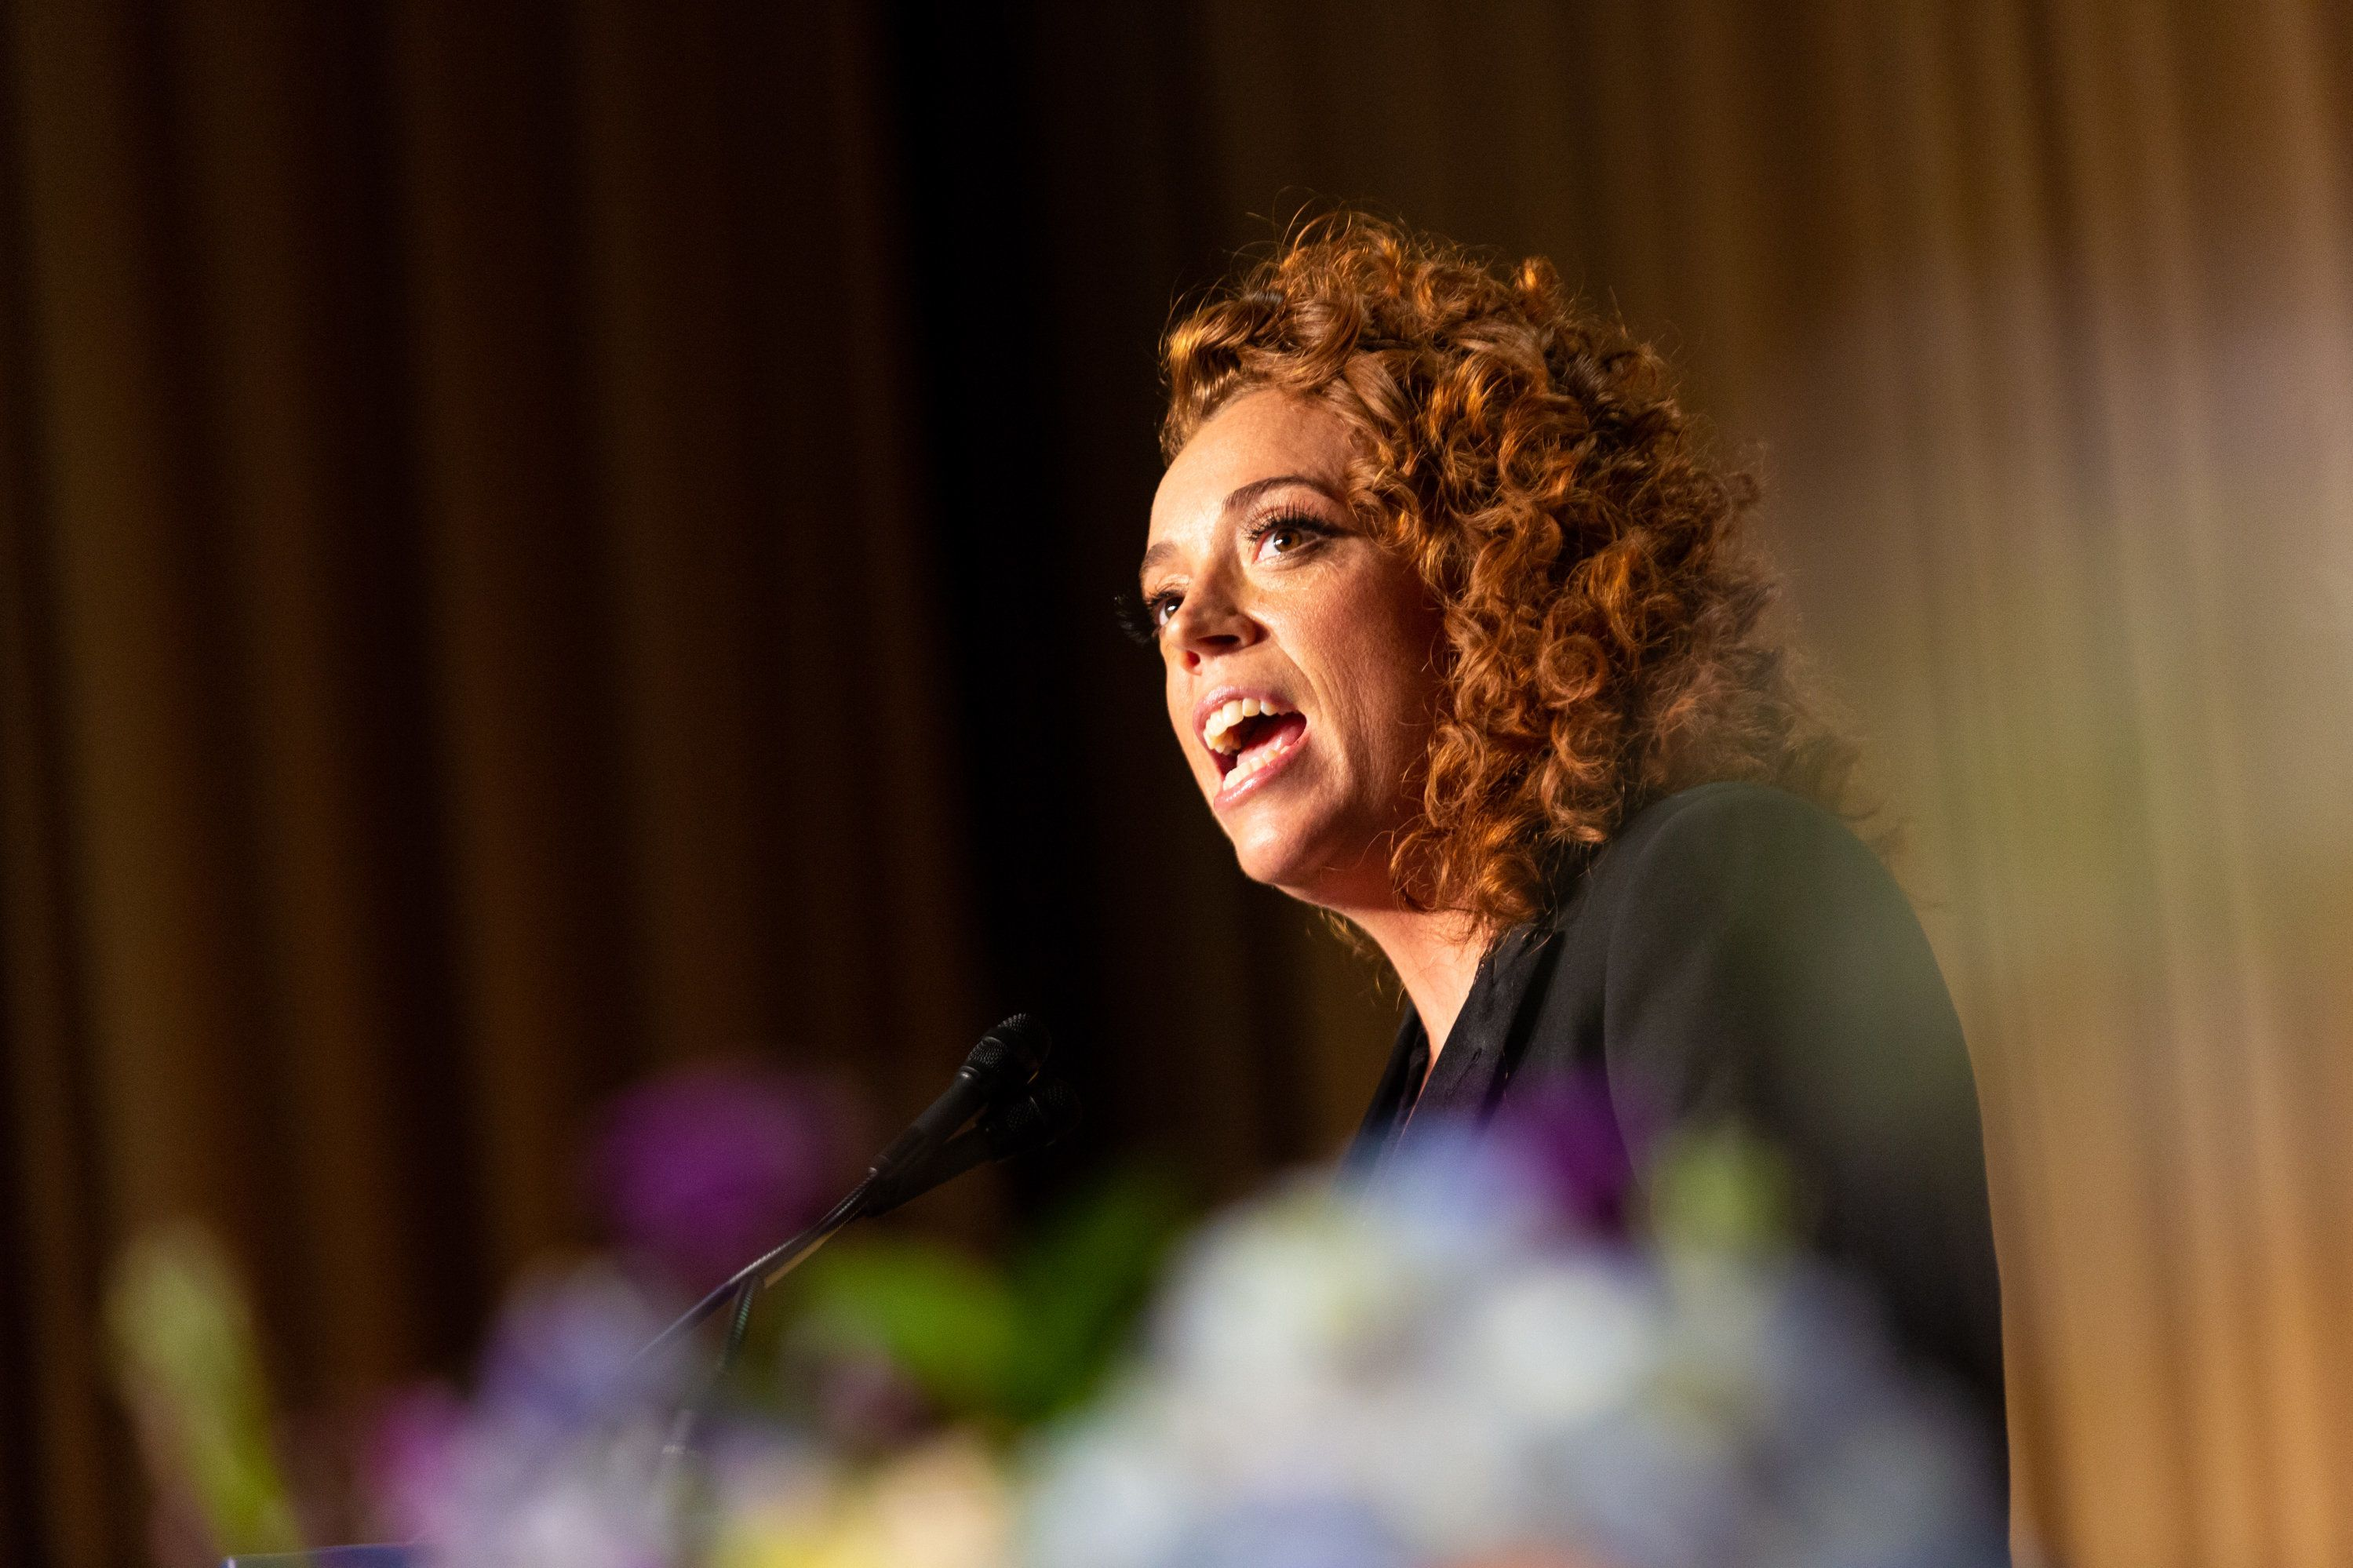 The internet has beenfixated onMichelle Wolf's jokes at the White House Correspondents' Association dinner.